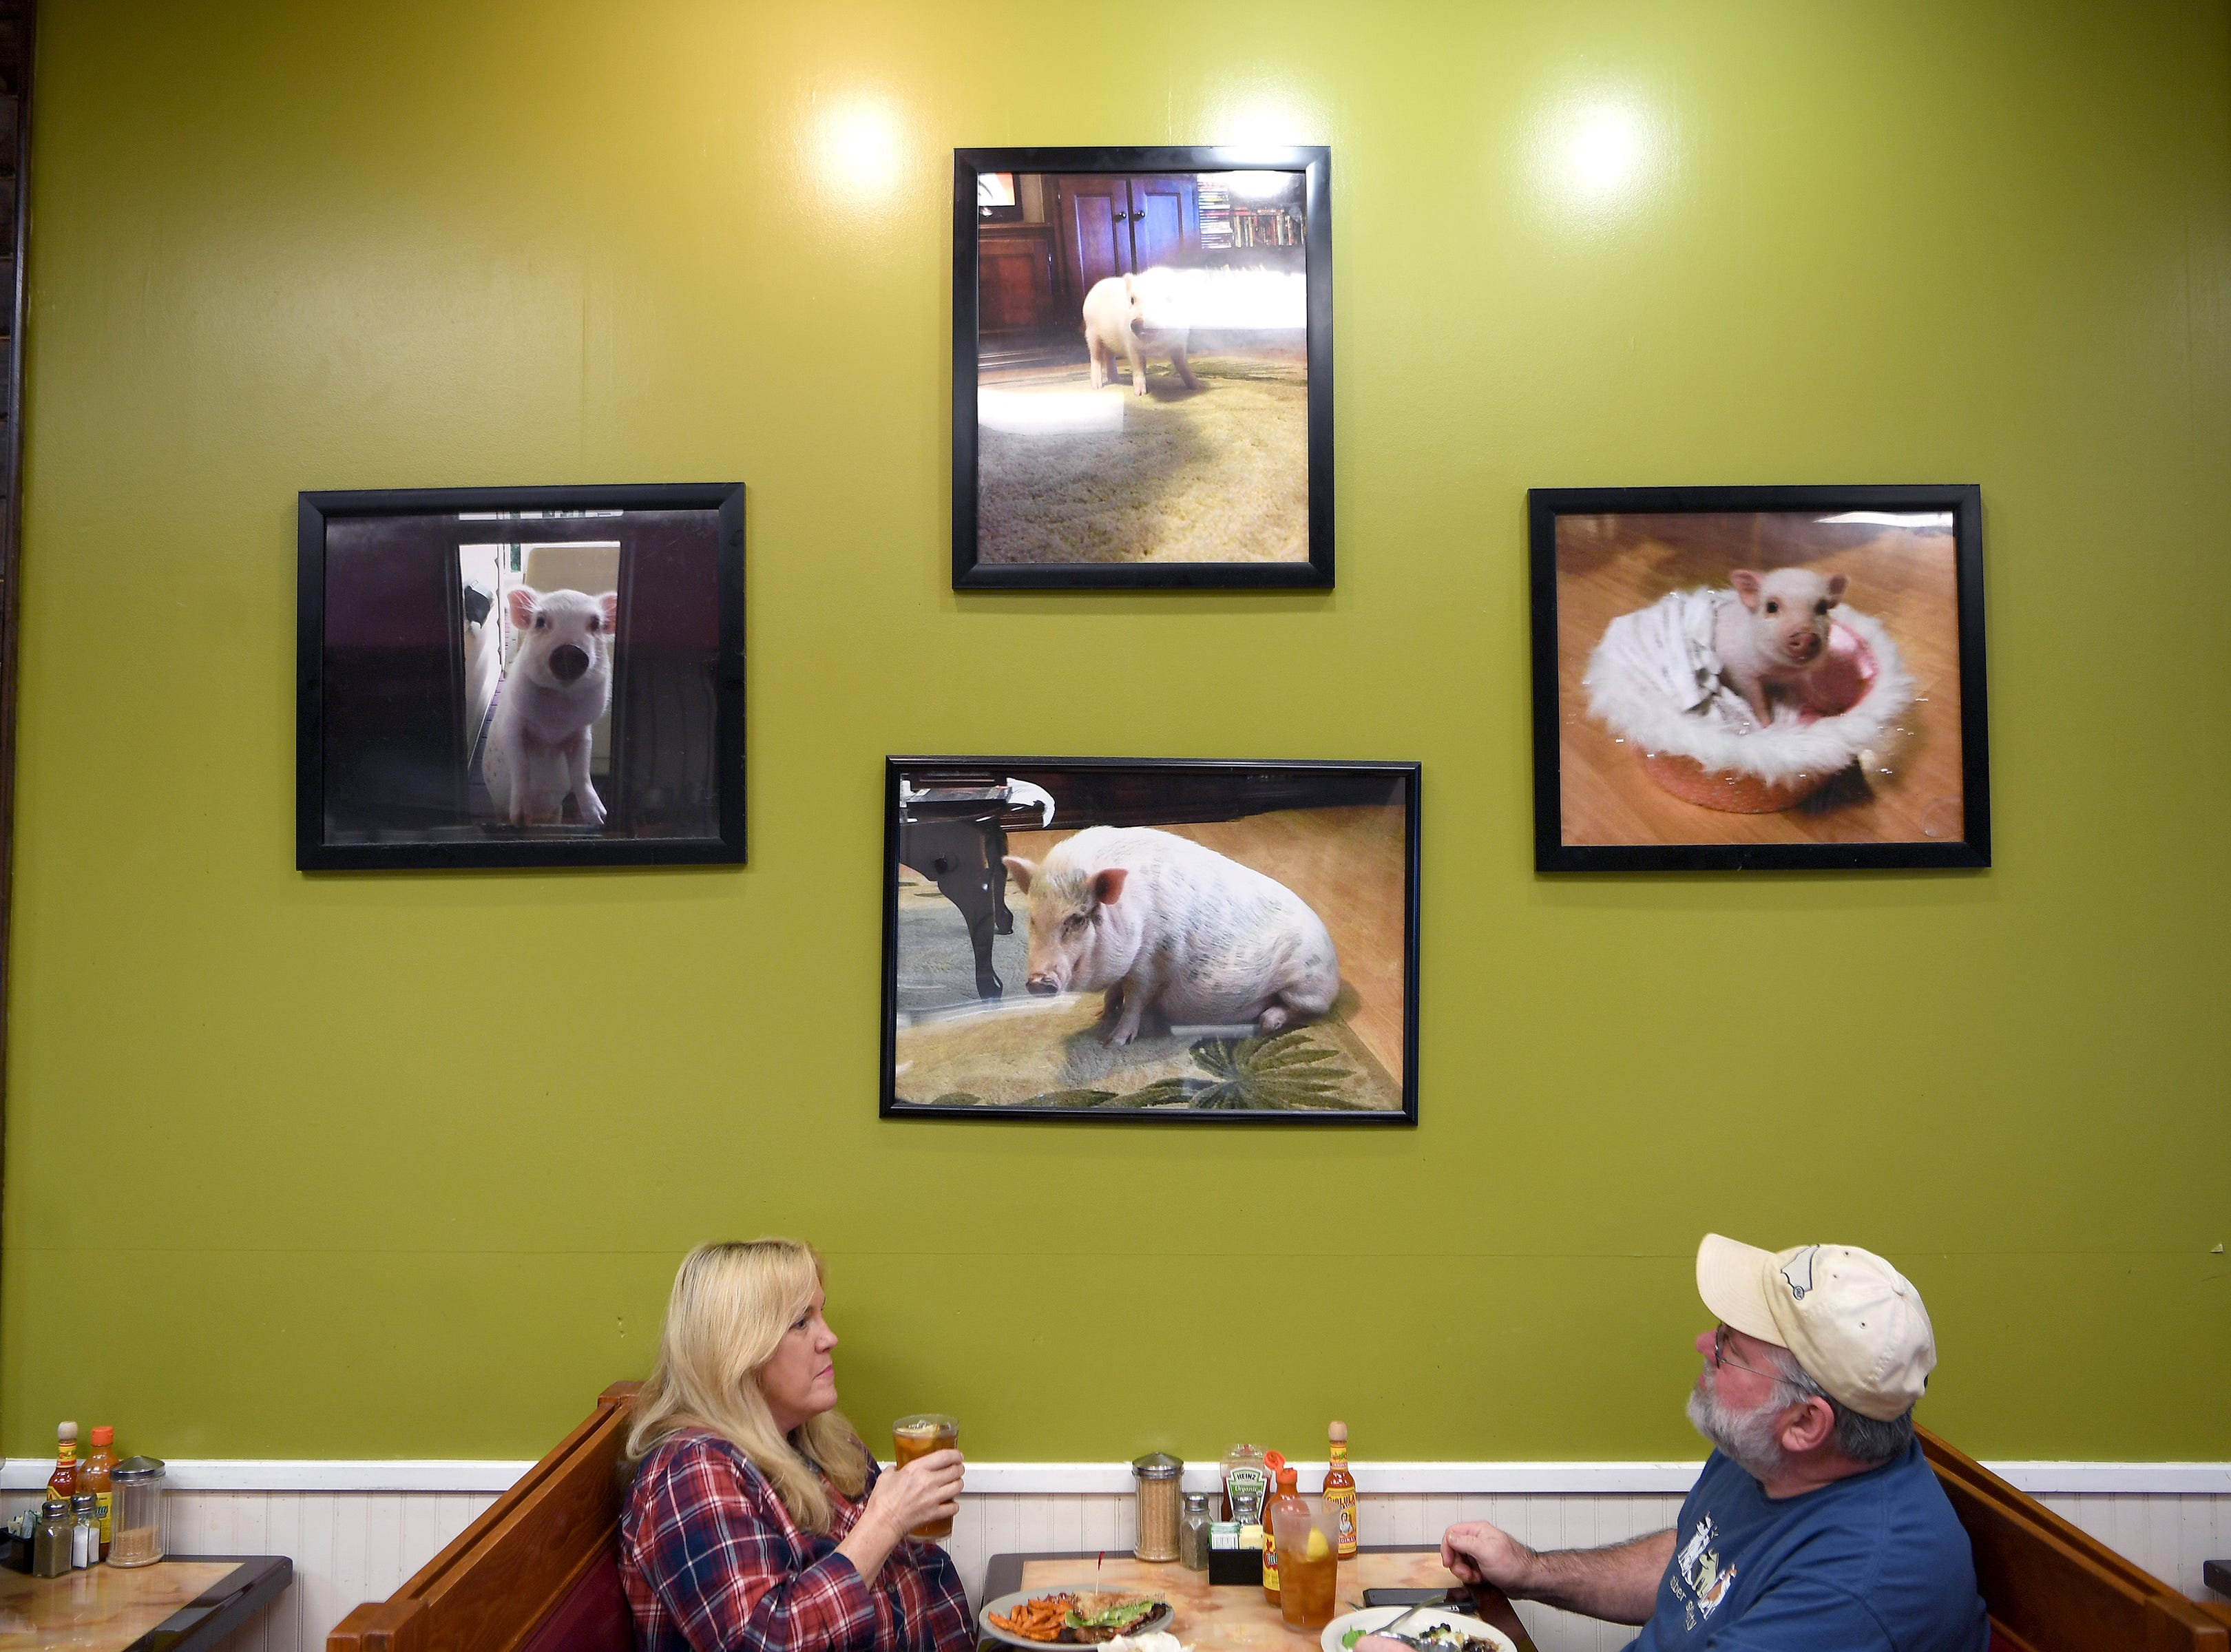 Abeja's House Cafe is named after the owners' family pet pig, Abeja, who is honored in a series of photos on display in the restaurant.